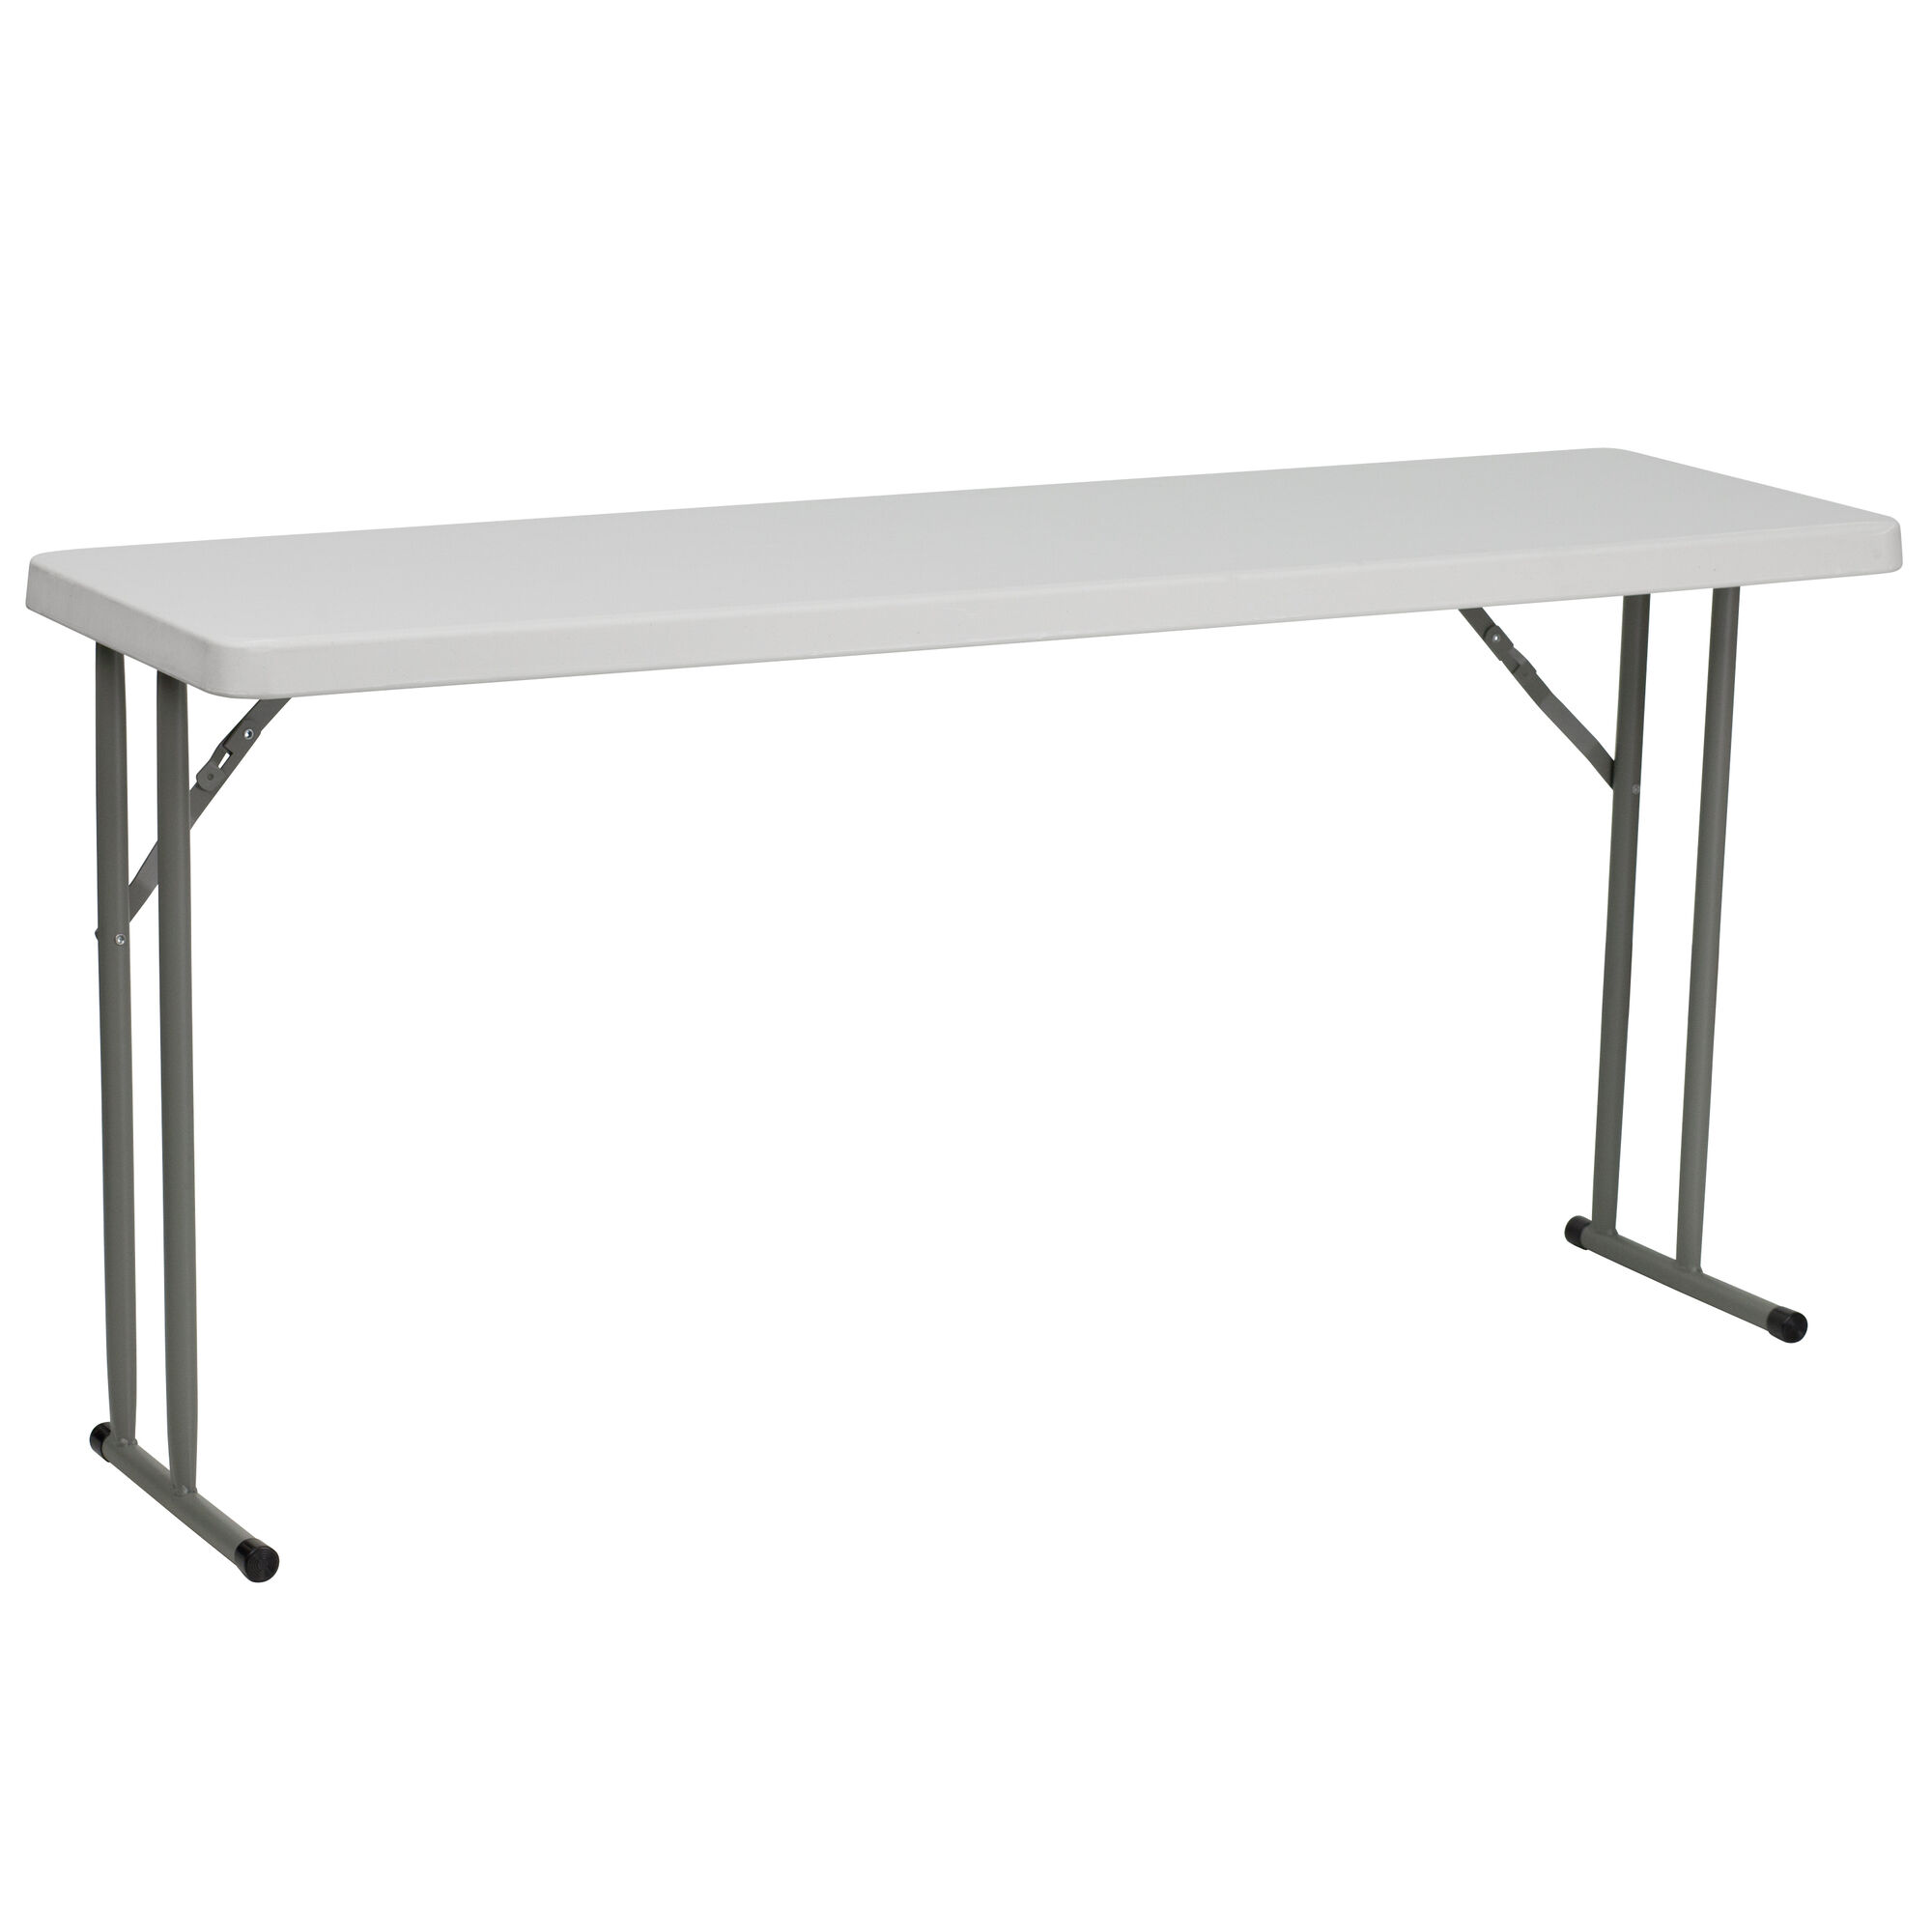 ask product hb tt training table tables teaching buildings details public for ll code